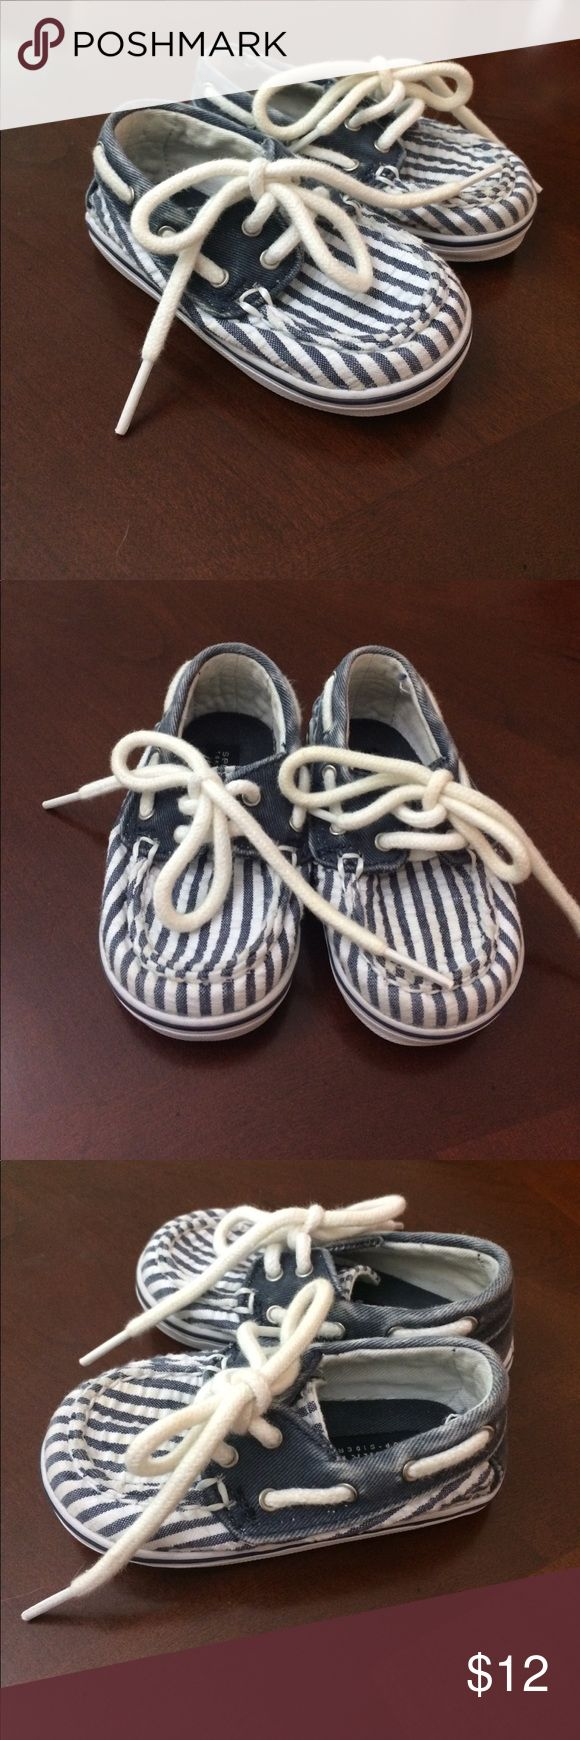 Sperry Top-Sider Bahama Crib Boat Shoes These adorable Sperry's are in almost-new condition. The only visible wear is grime on the sole. Sperry Top-Sider Shoes Baby & Walker